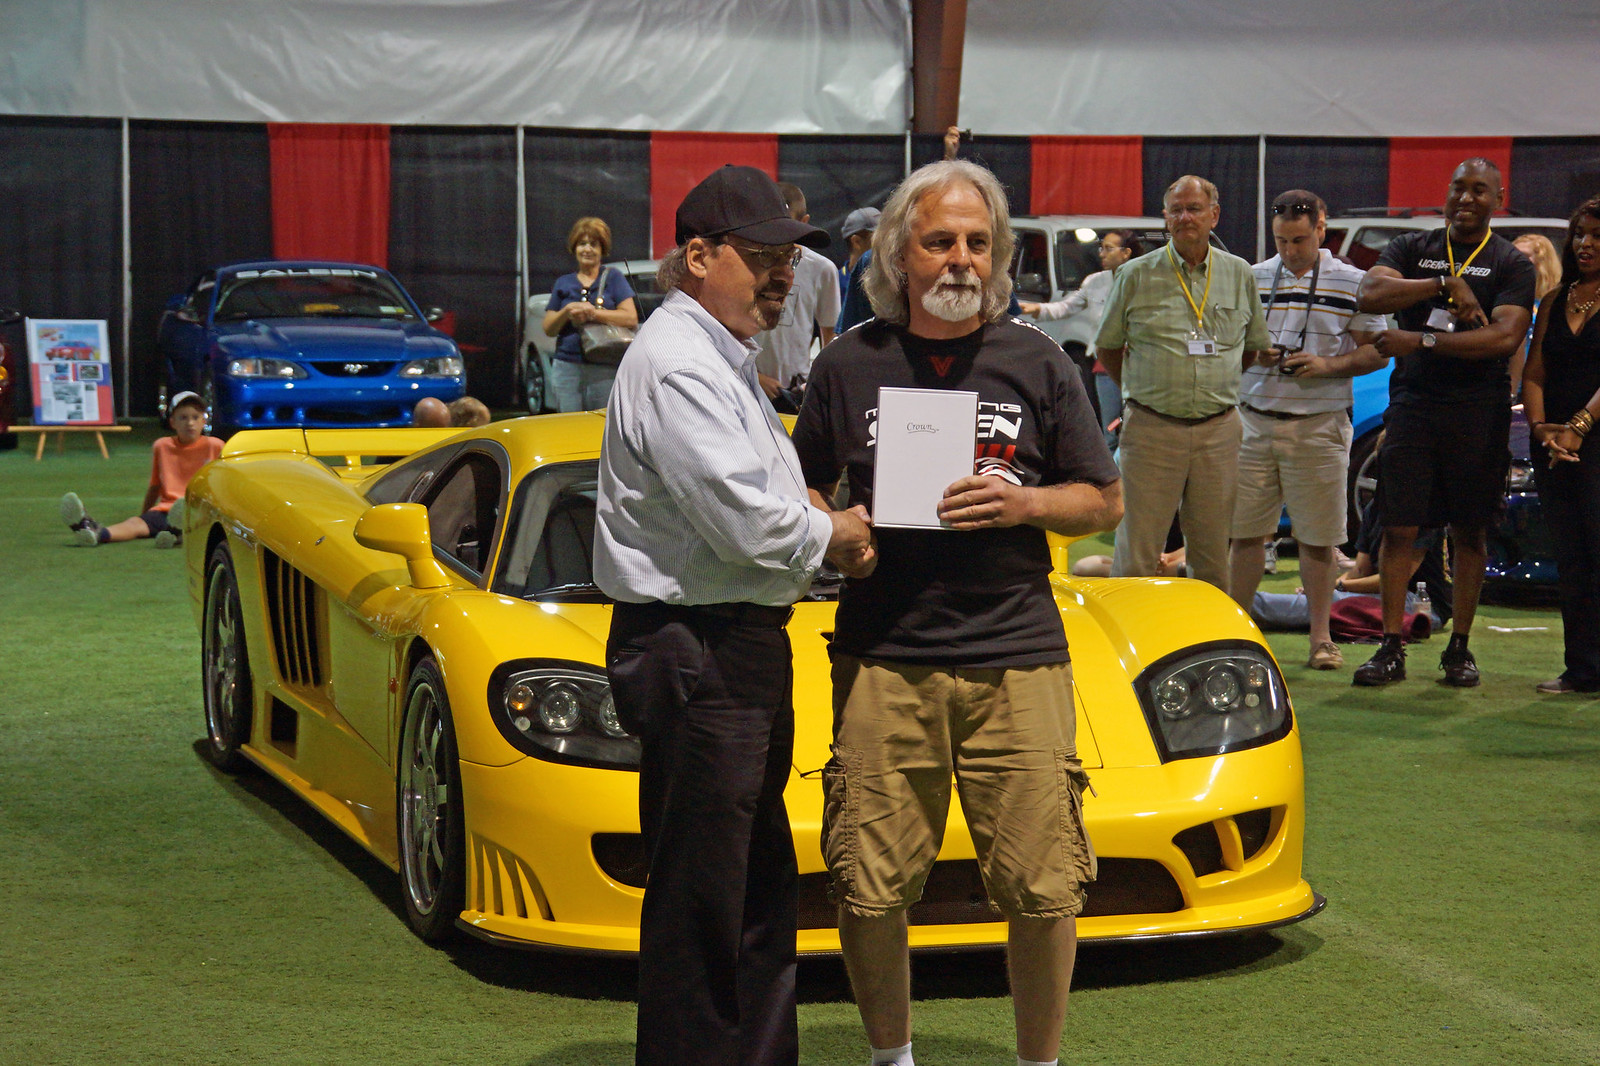 Saleen Nationals 2014 pictures 14832761323_9541a1877a_h